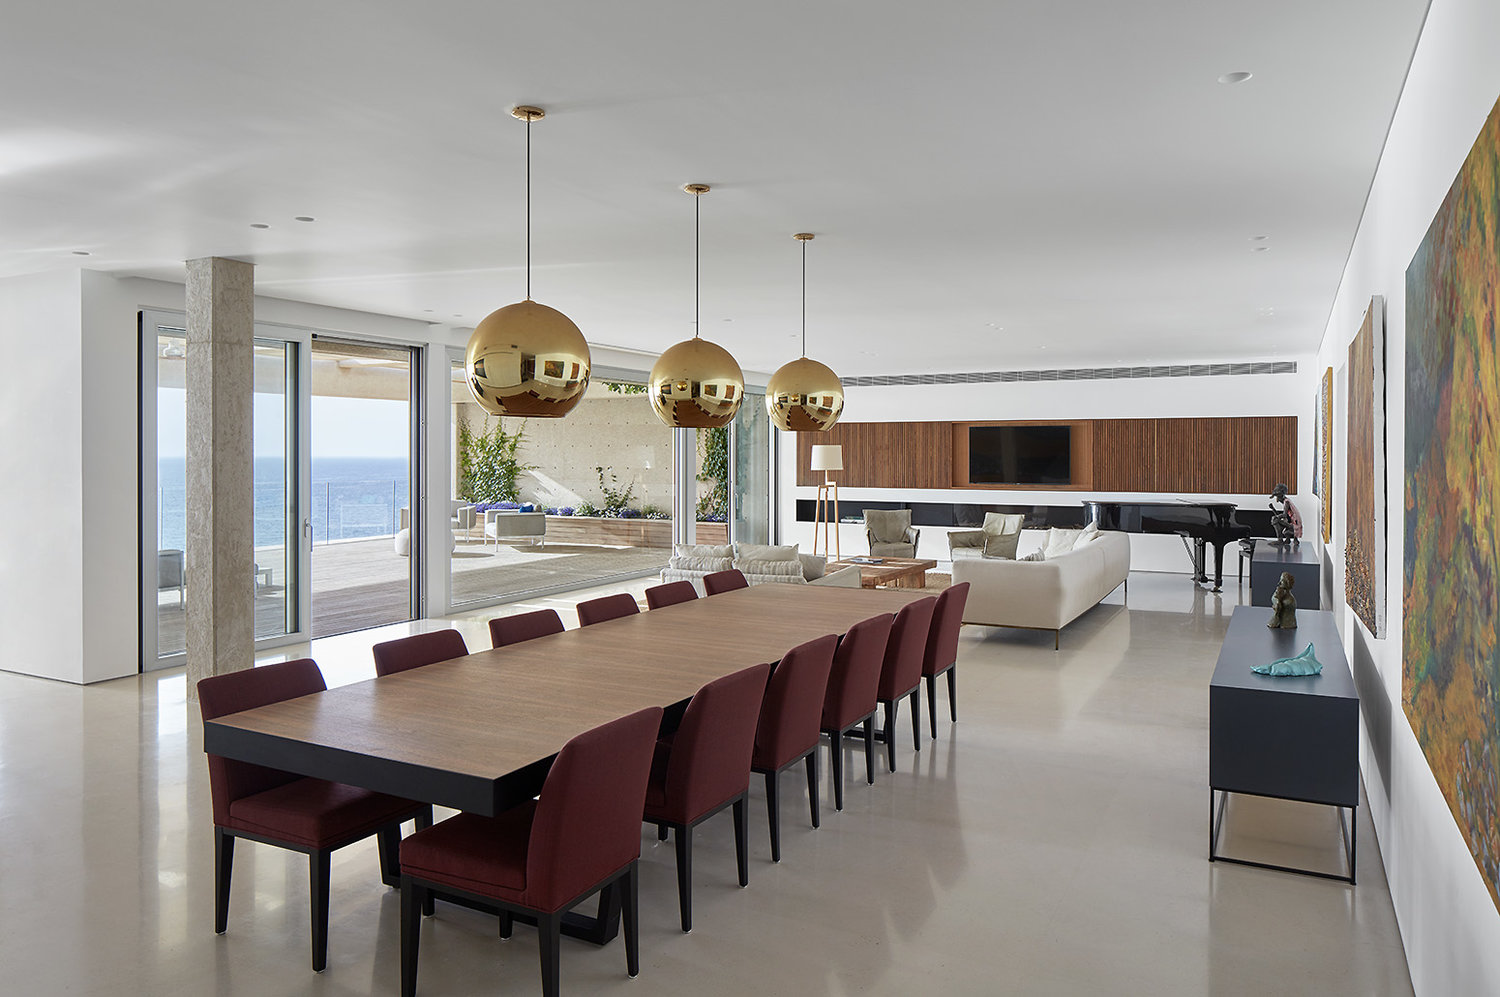 Luxury apartment dining table